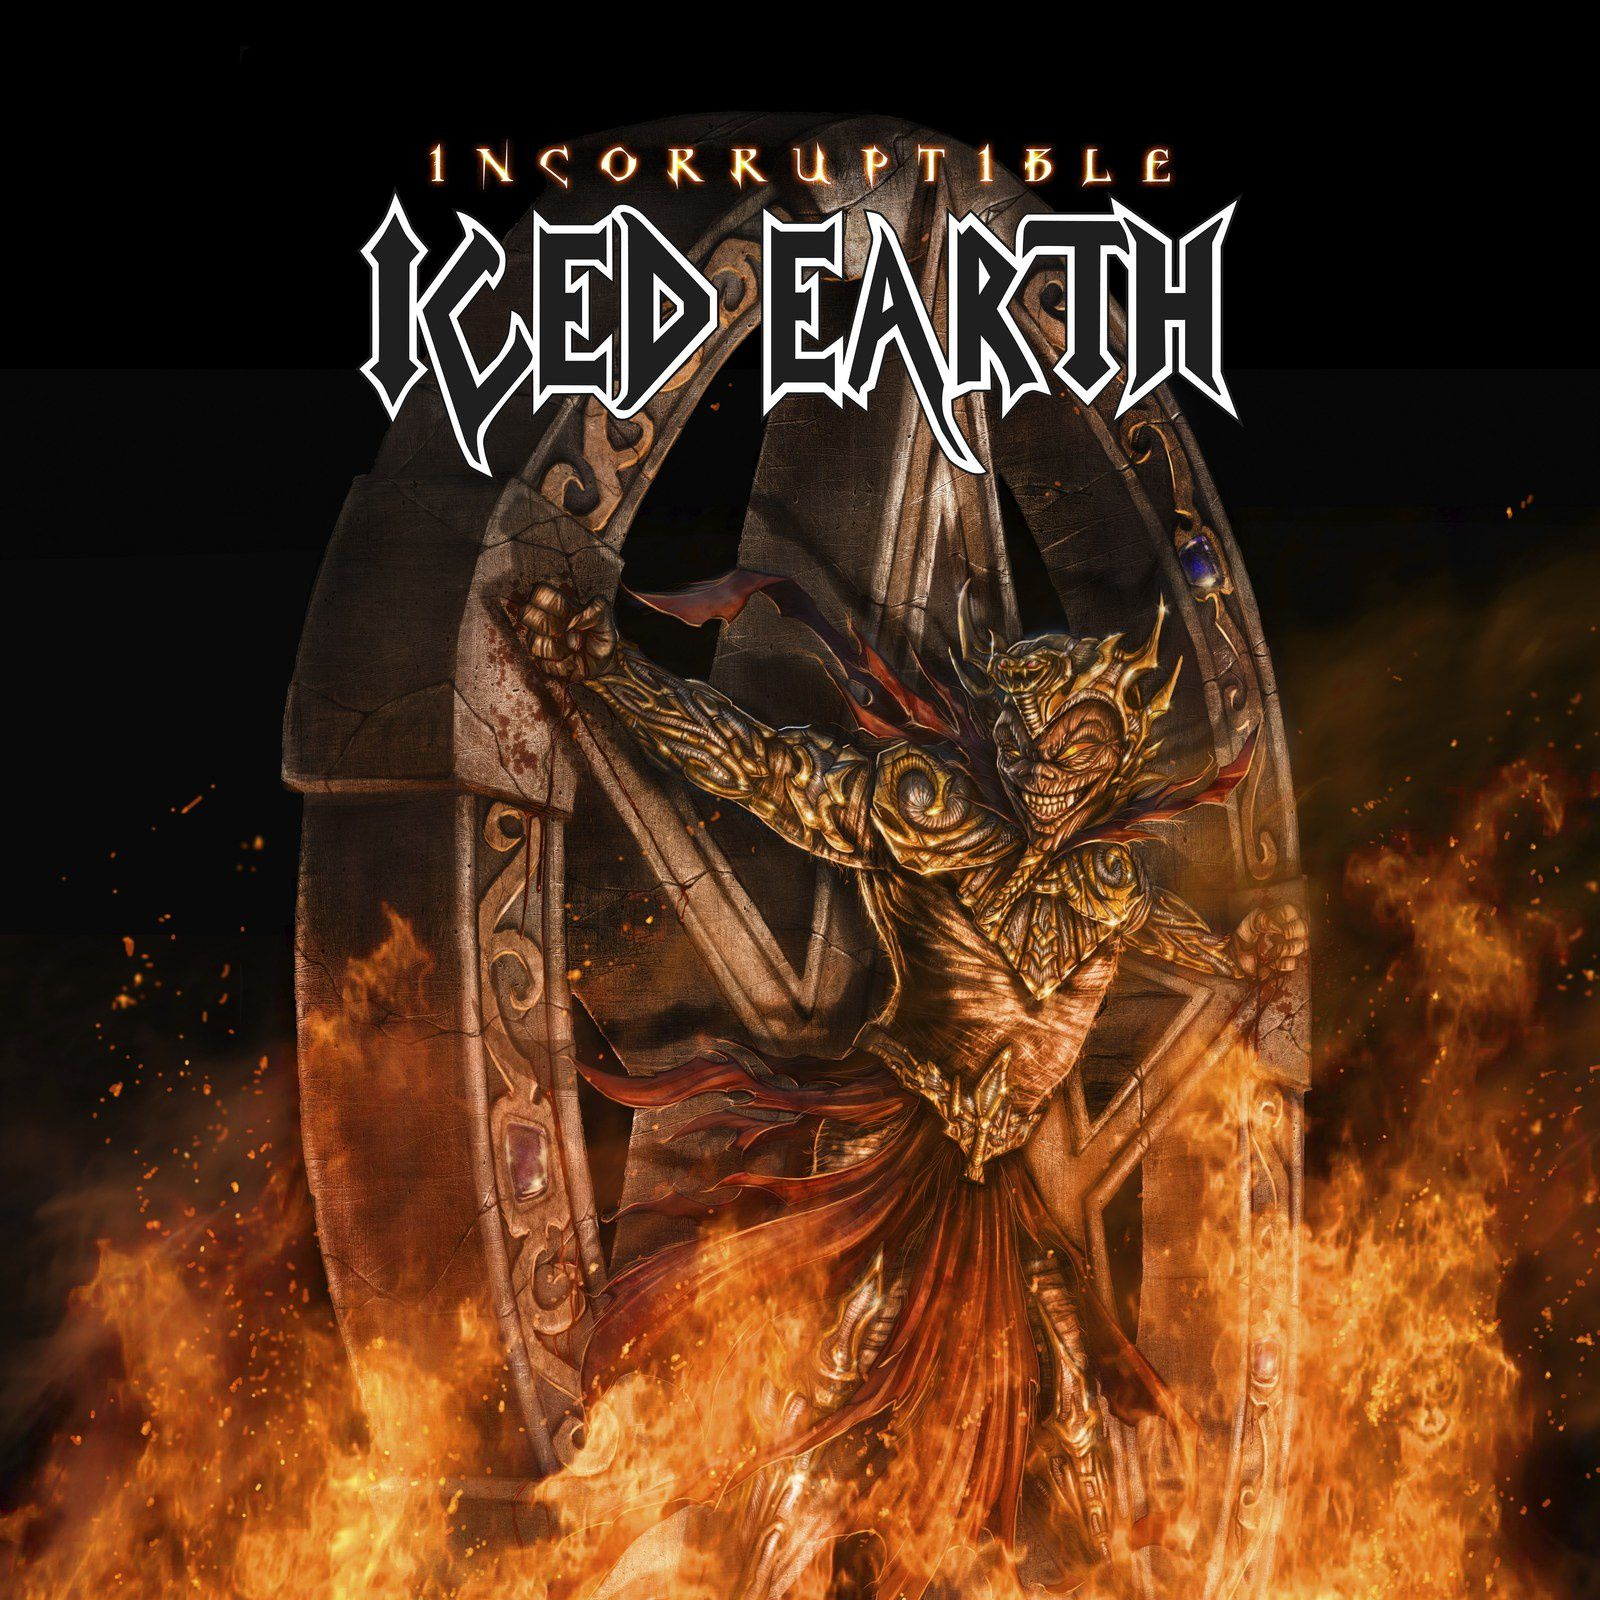 """CD review ICED EARTH """"Incorruptible"""""""